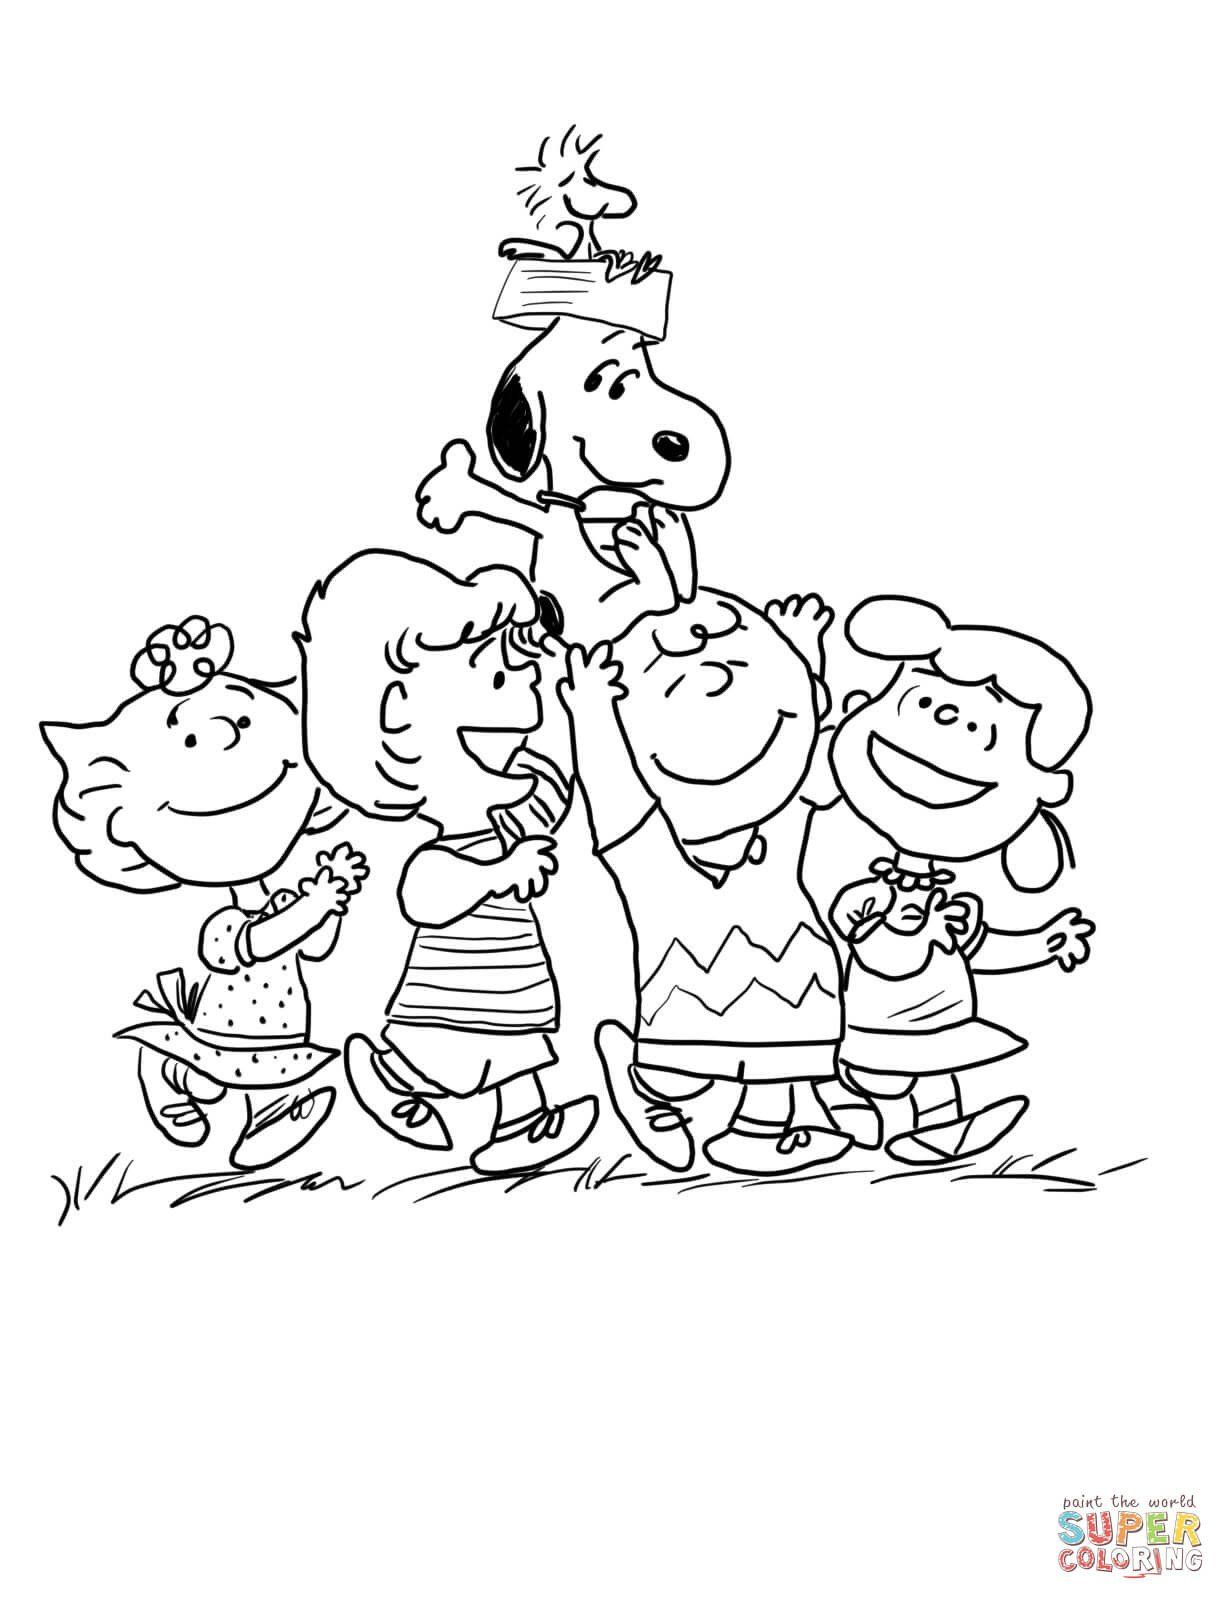 Peanuts Halloween Coloring Pages Peanuts Coloring Pages Snoopy Coloring Pages Christmas Coloring Books Free Printable Coloring Pages